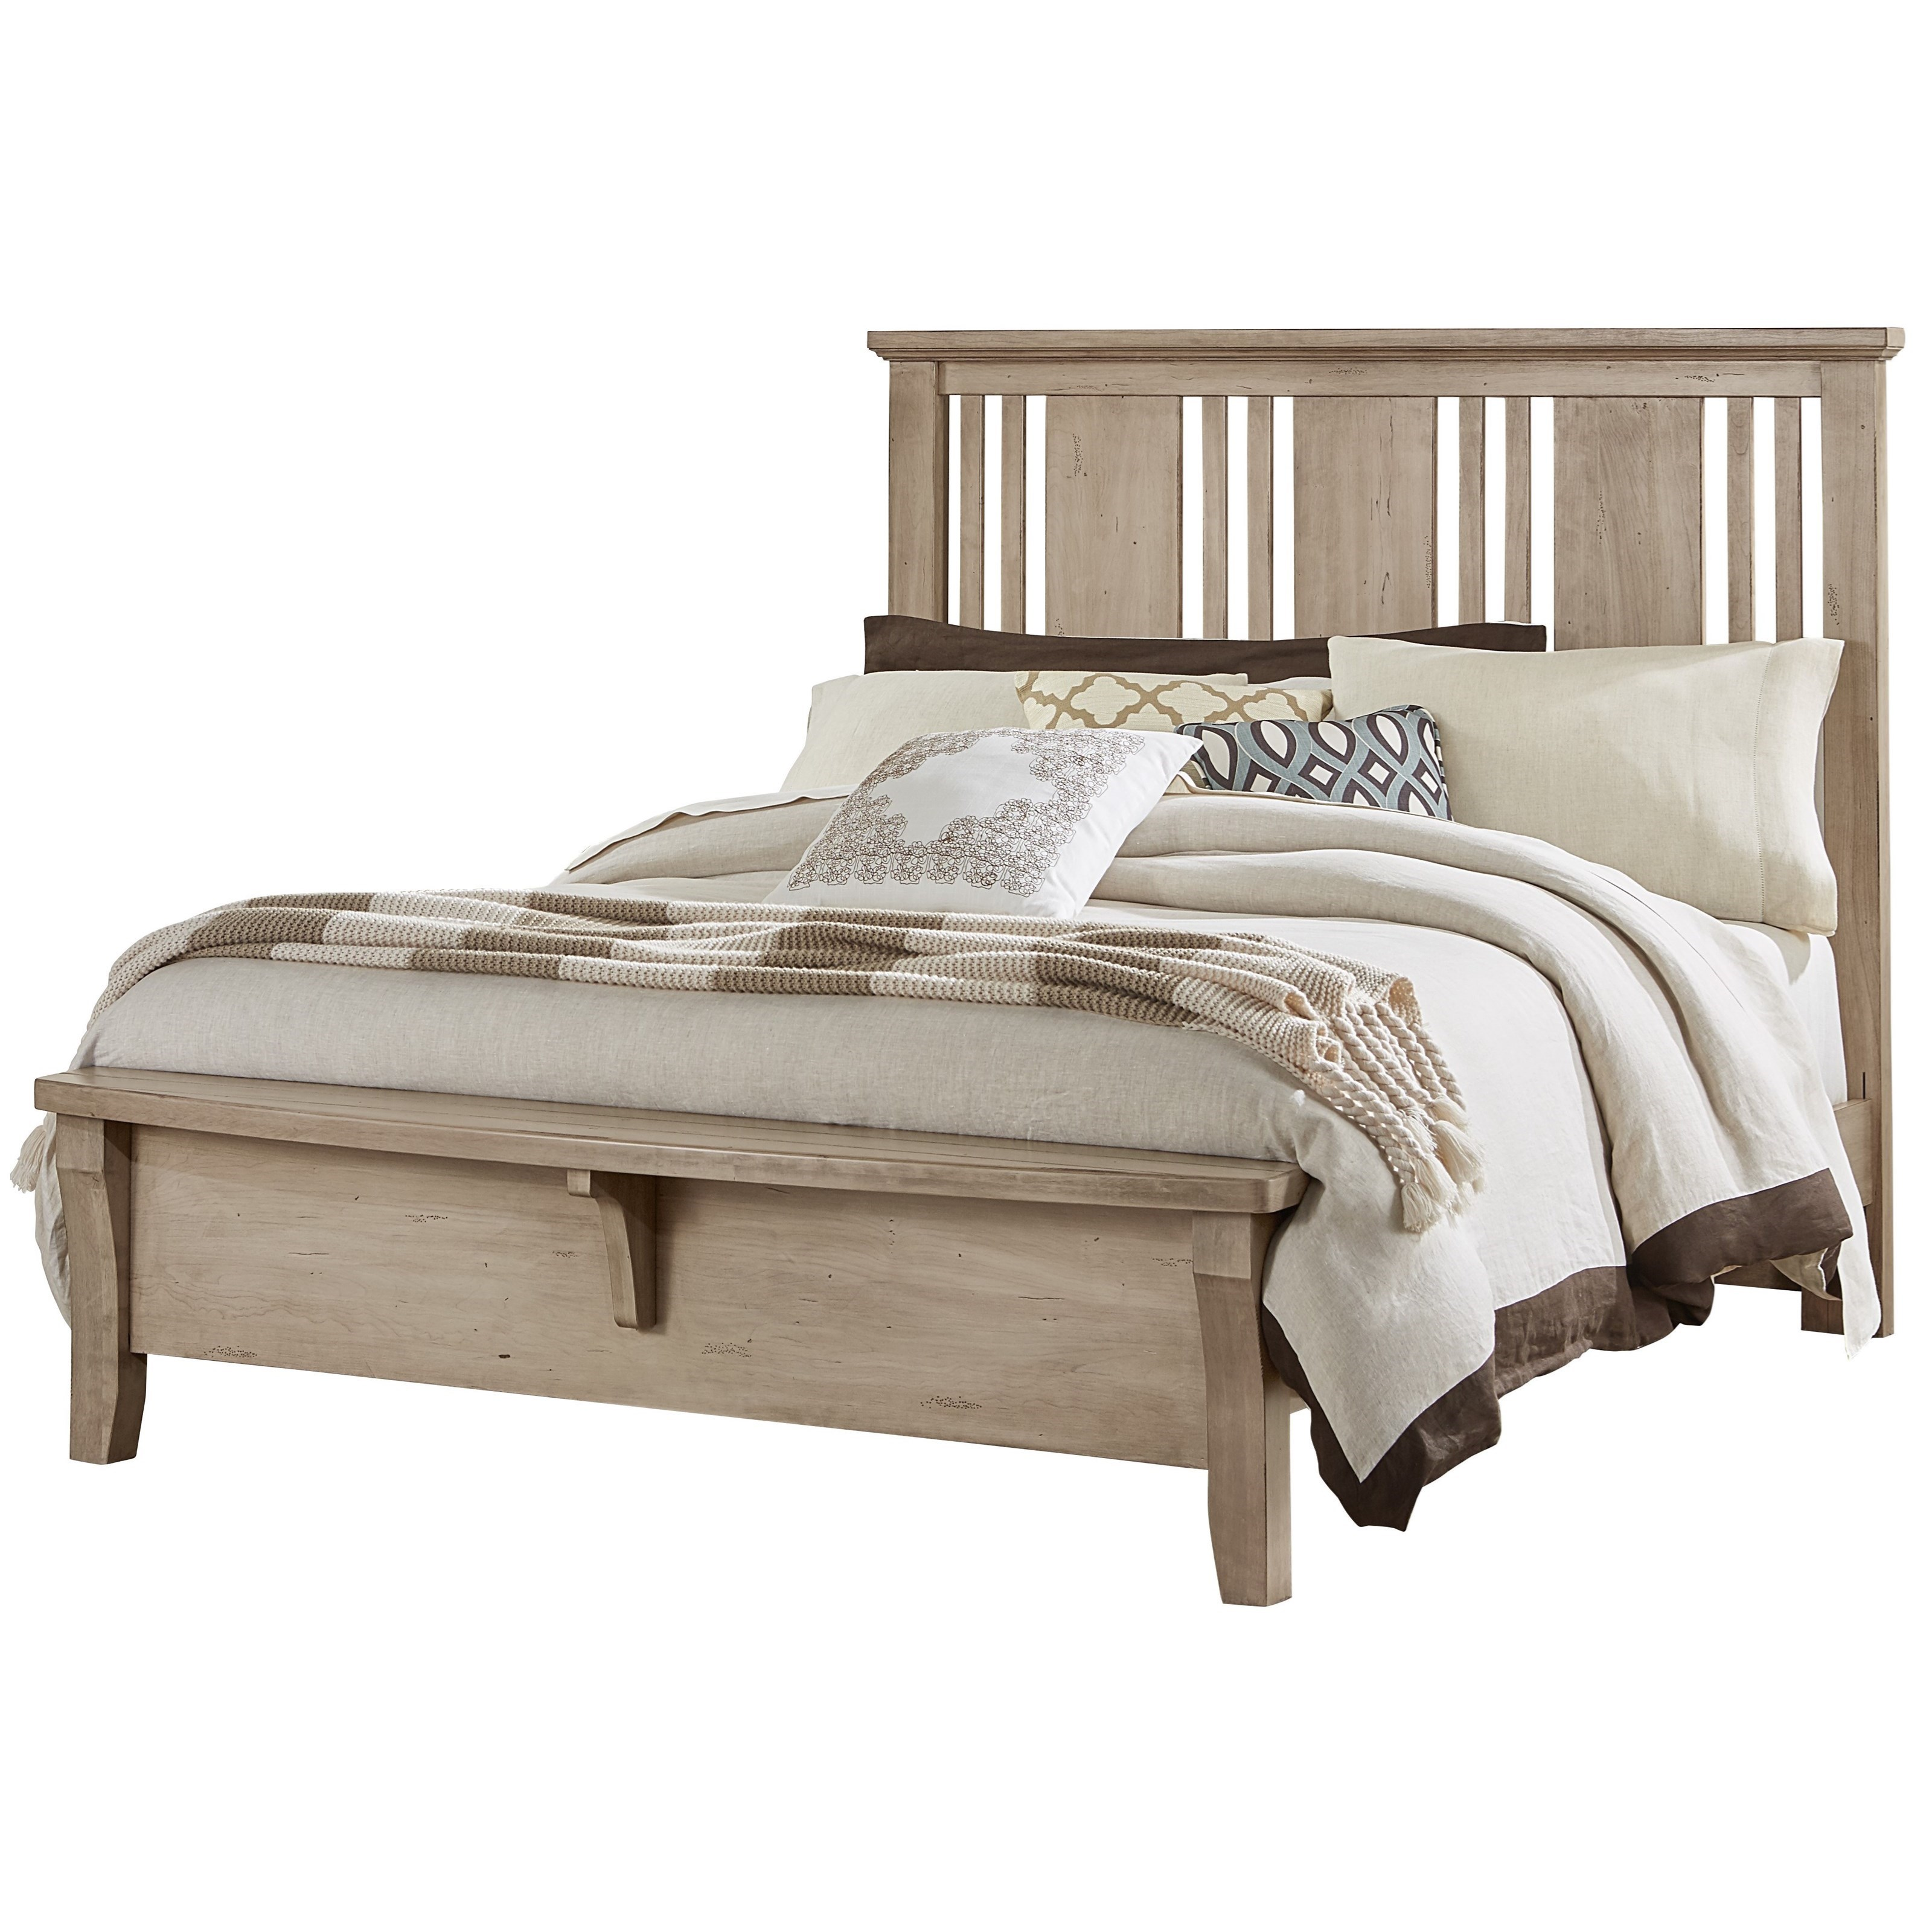 Vaughan bassett american cherry king craftsman bed w for Craftsman bed